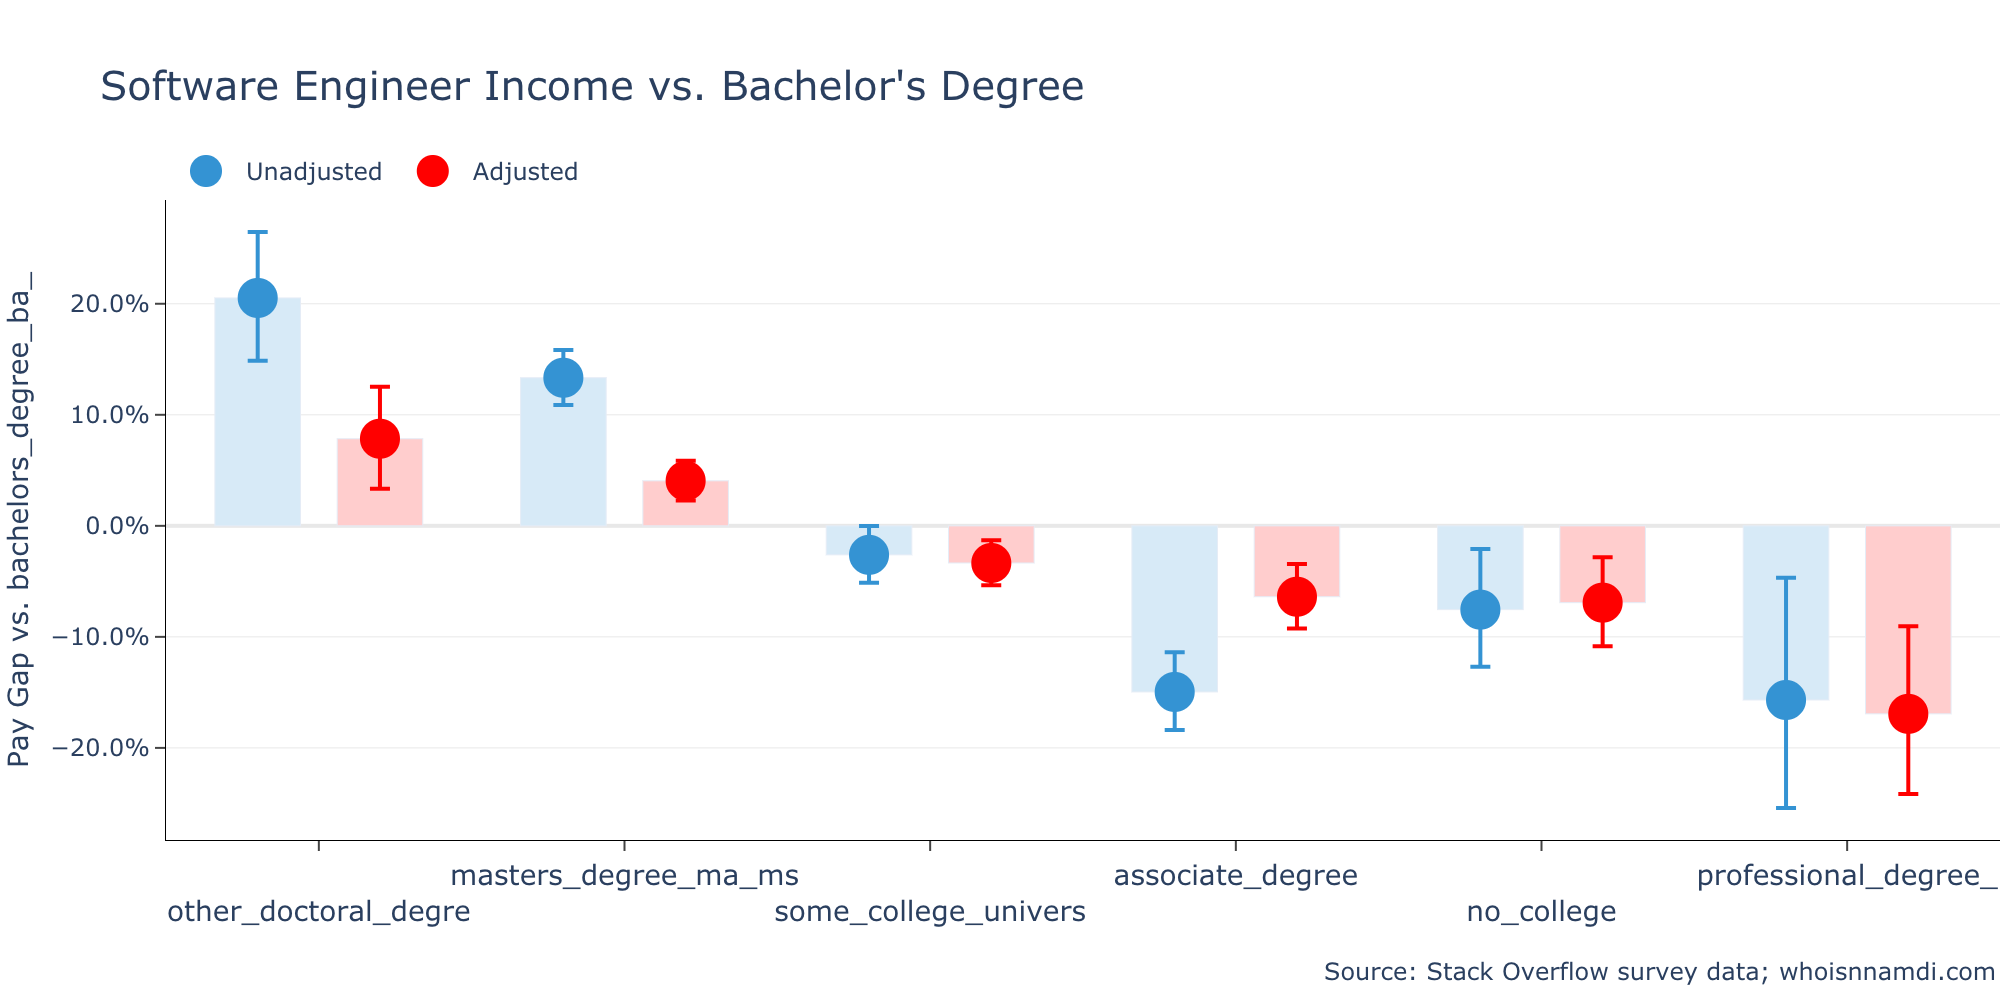 Do College Degrees Matter for Software Engineers? Maybe